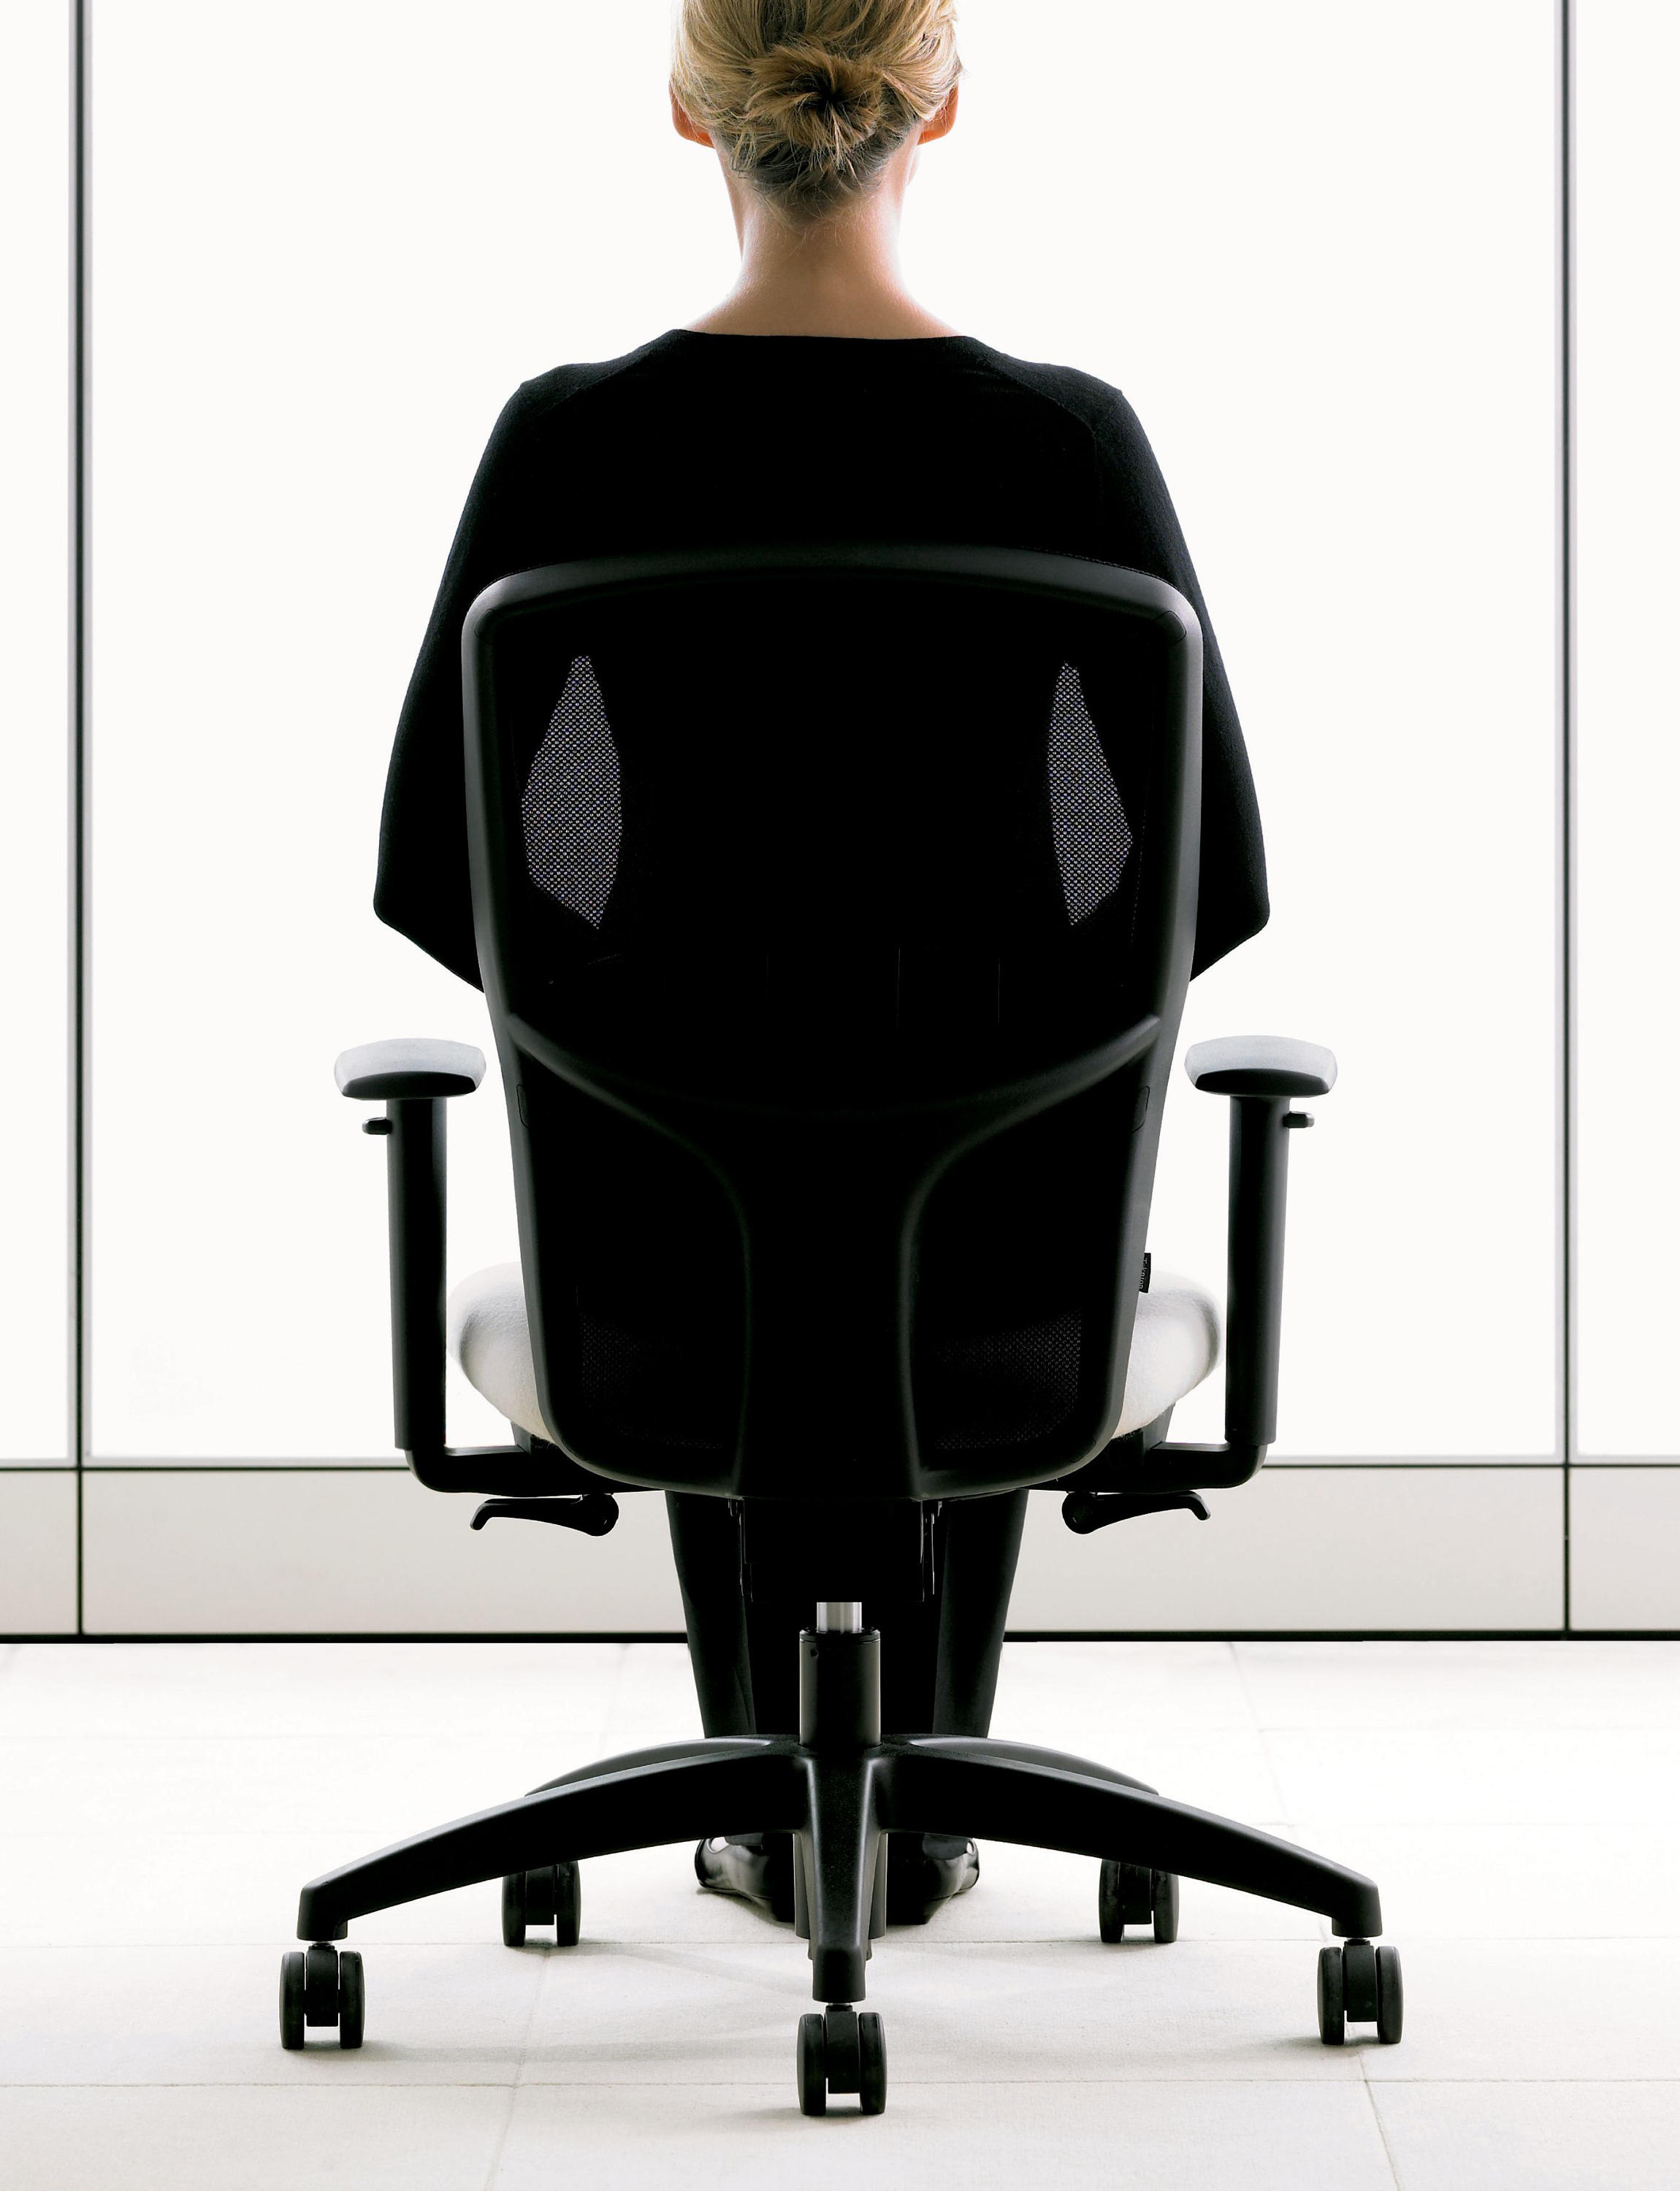 Office chair back view - Ambient Images